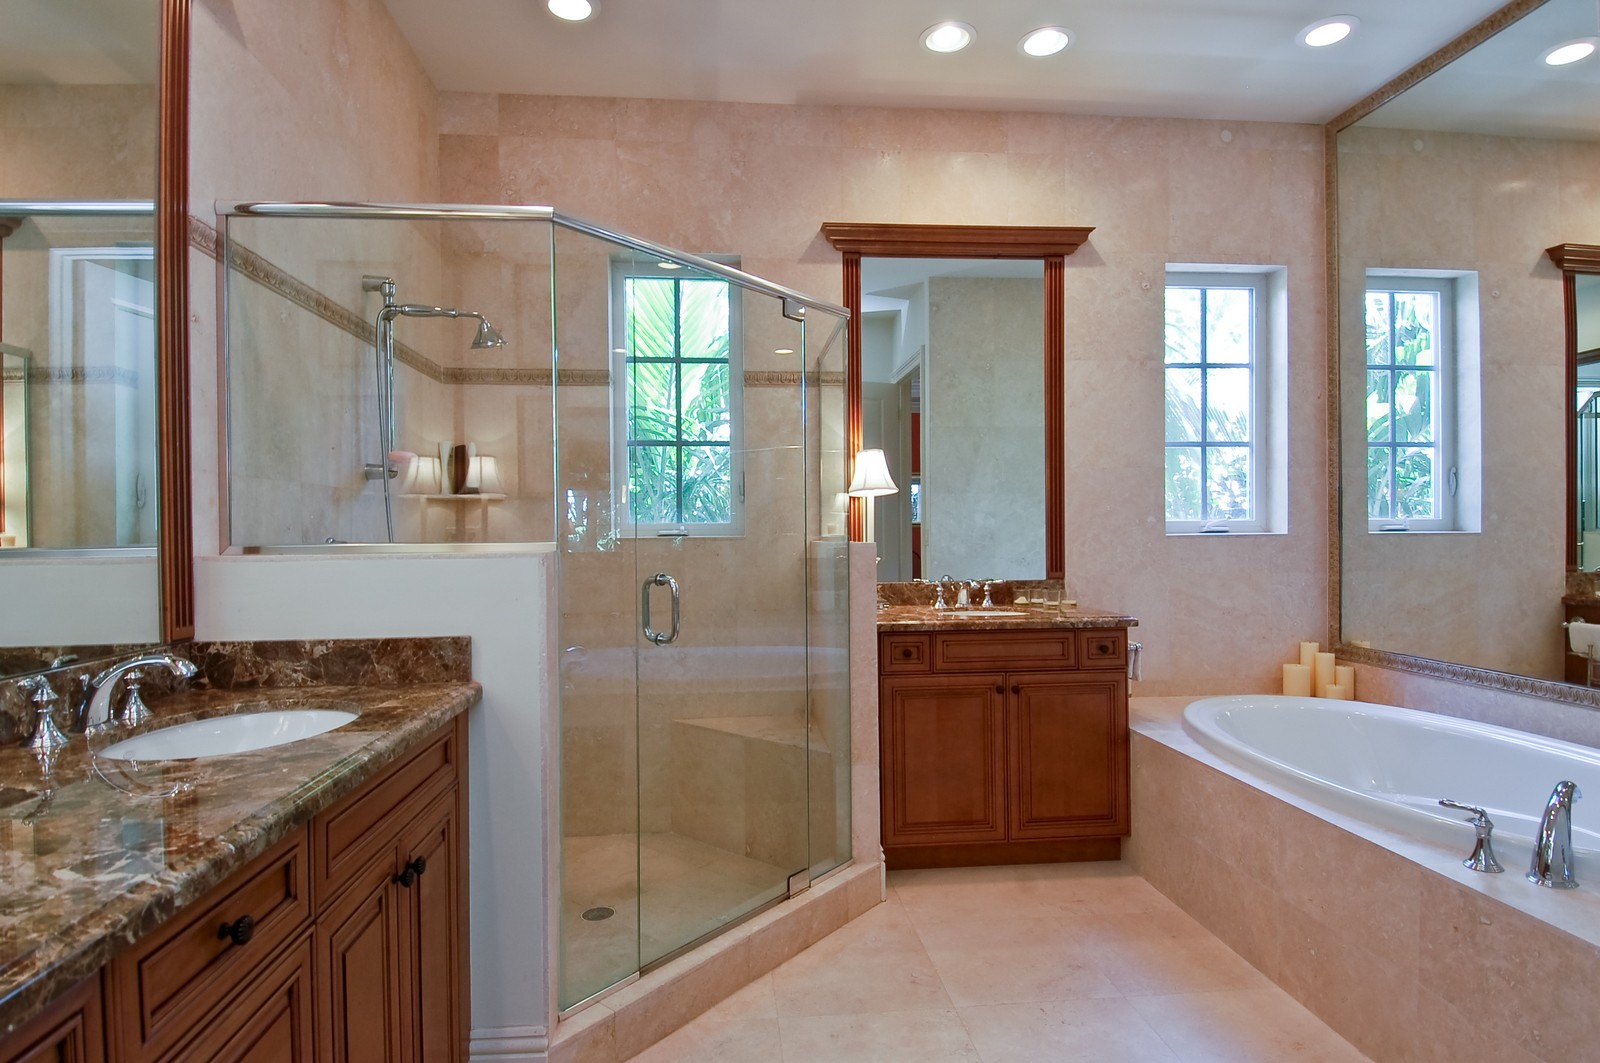 Real Estate Photography - 114 Venetian Dr, Delray Beach, FL, 33483 - Master Bathroom